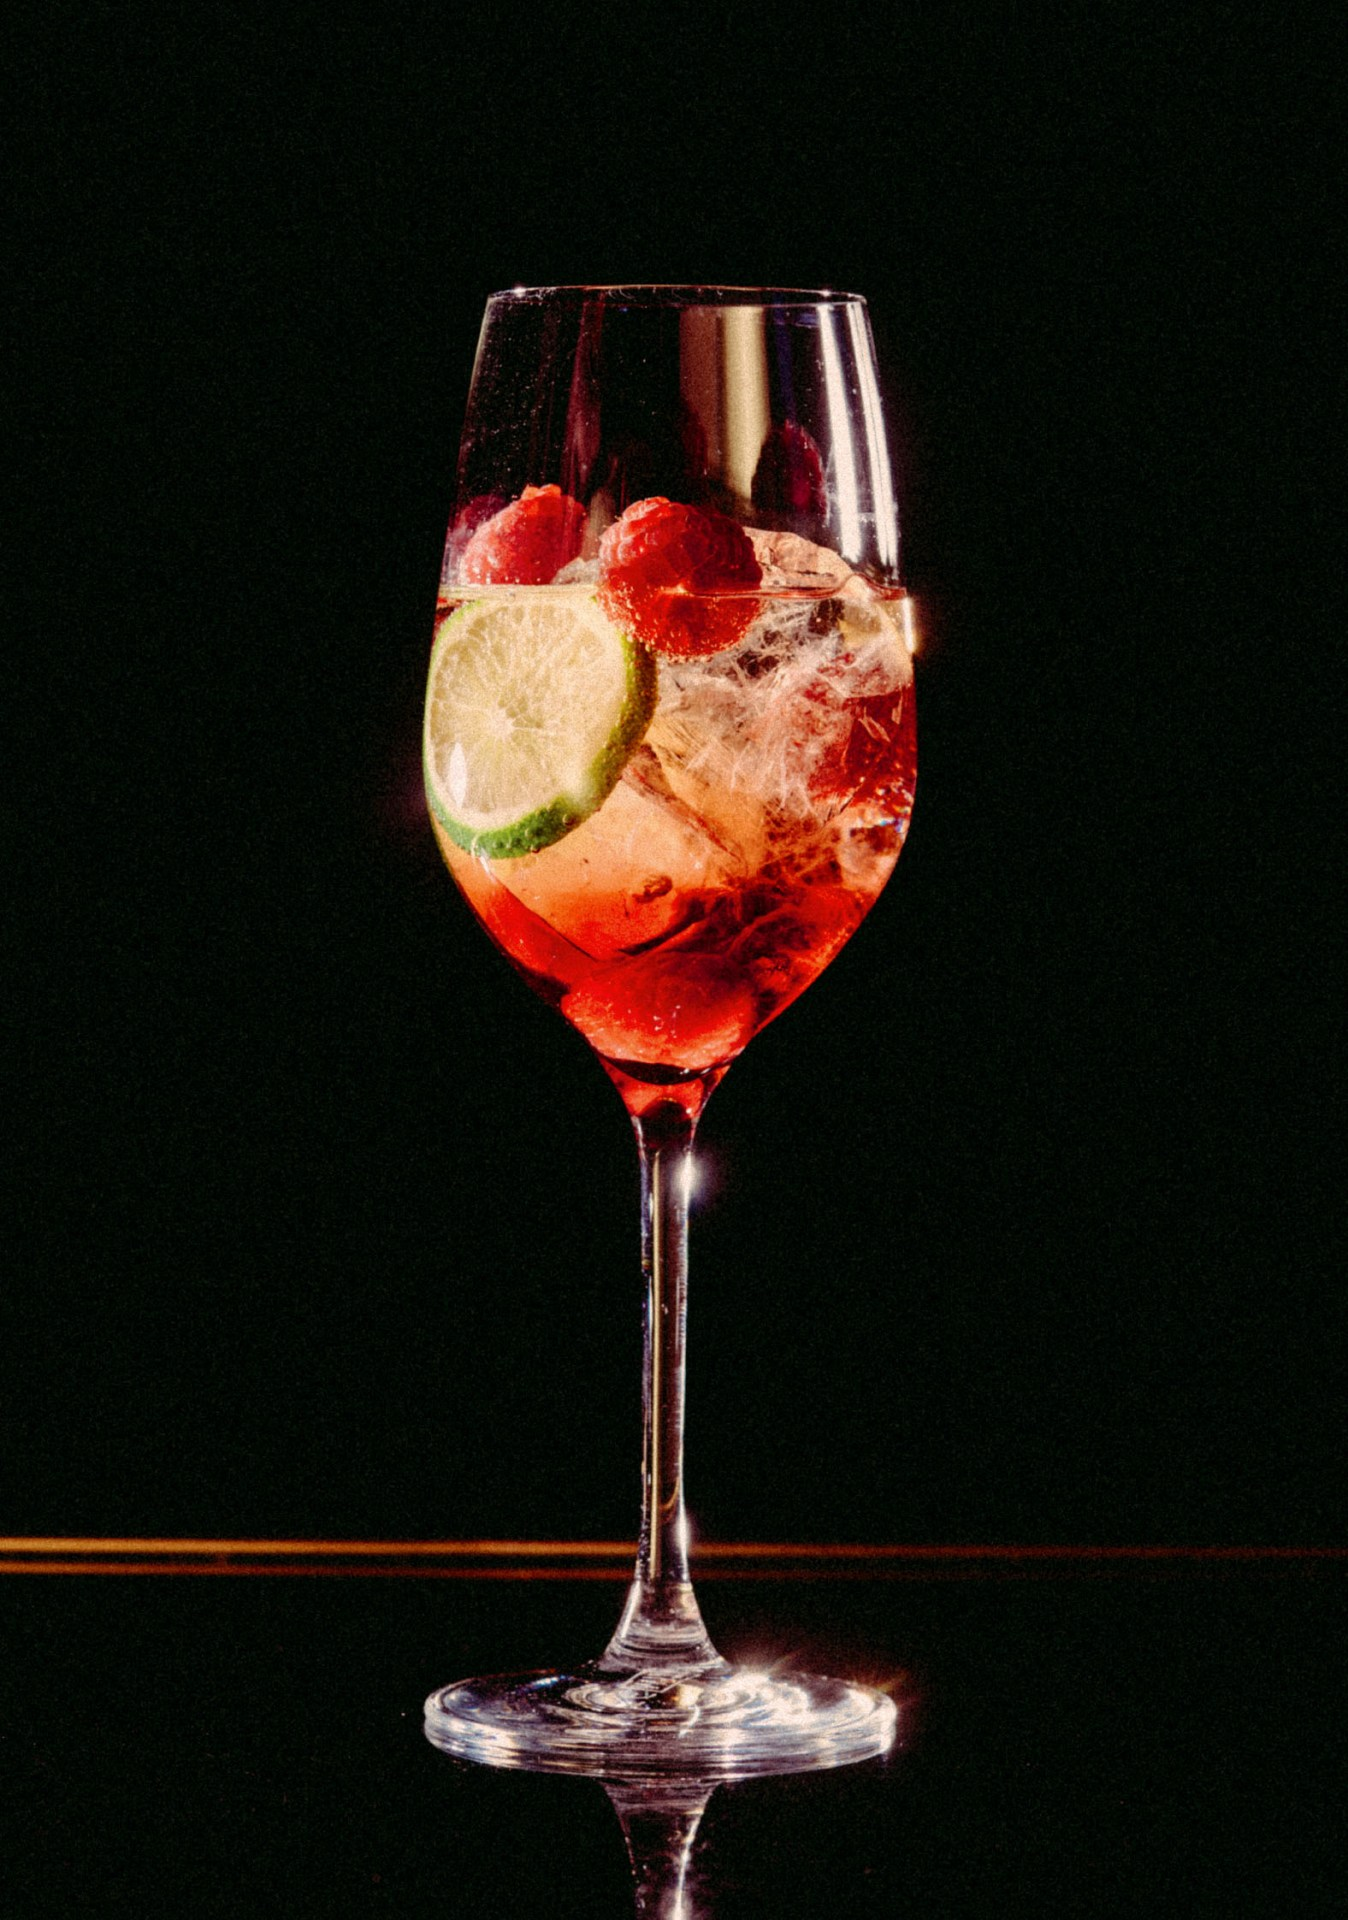 Recipe: 2cl Chambord 1cl St. Germain Filled with Alexandra Rosé